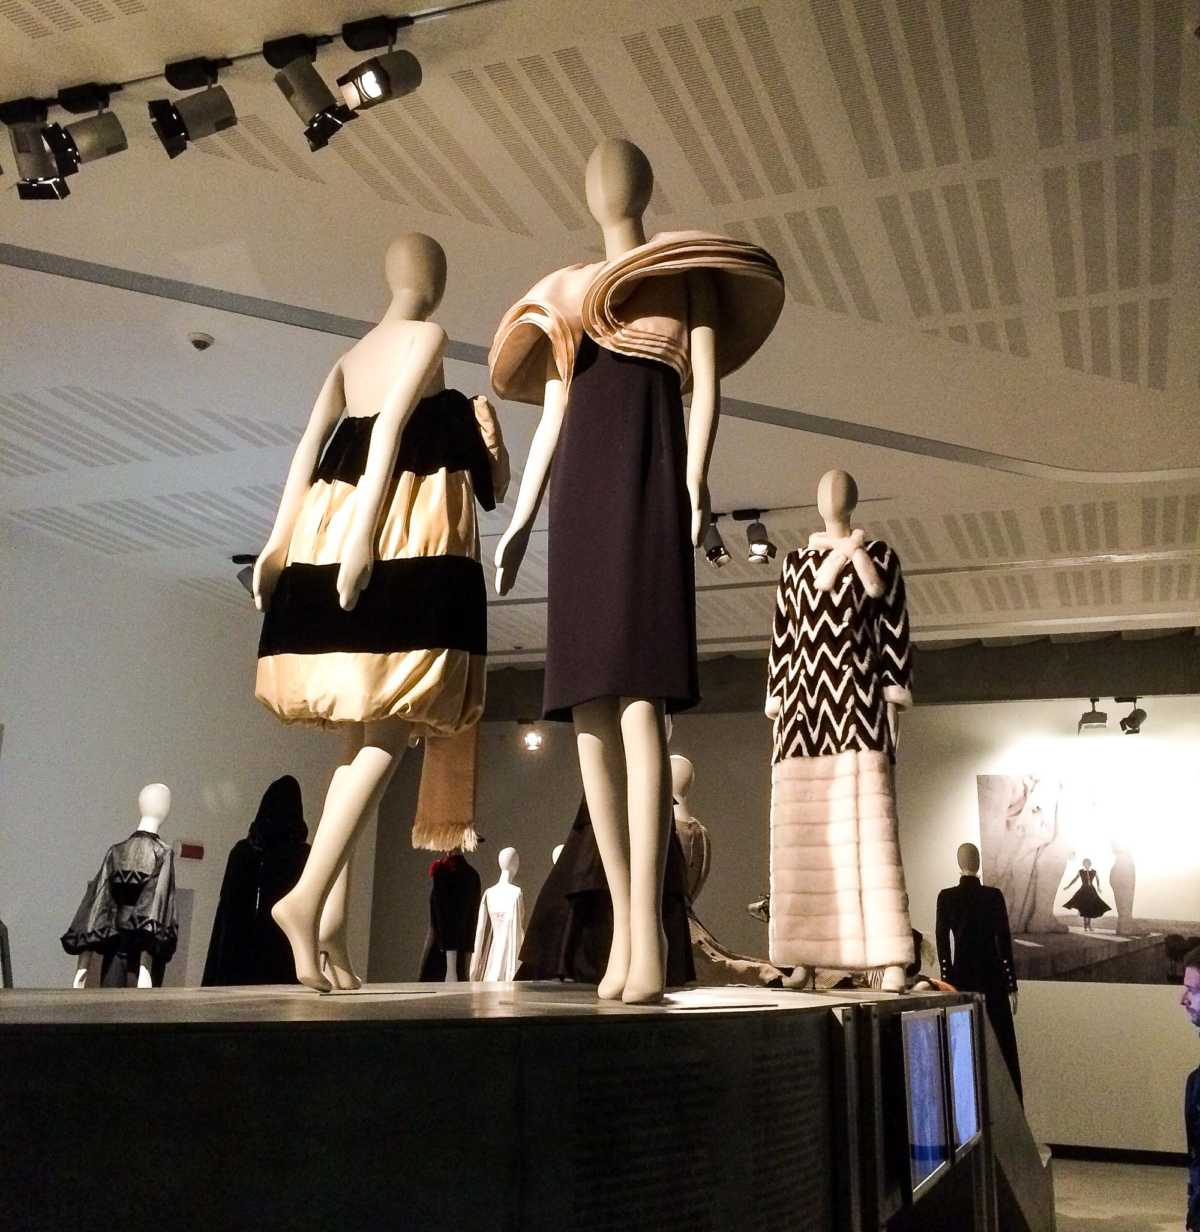 Fashion Exhibit MAXXI Architecture Rome Context Travel